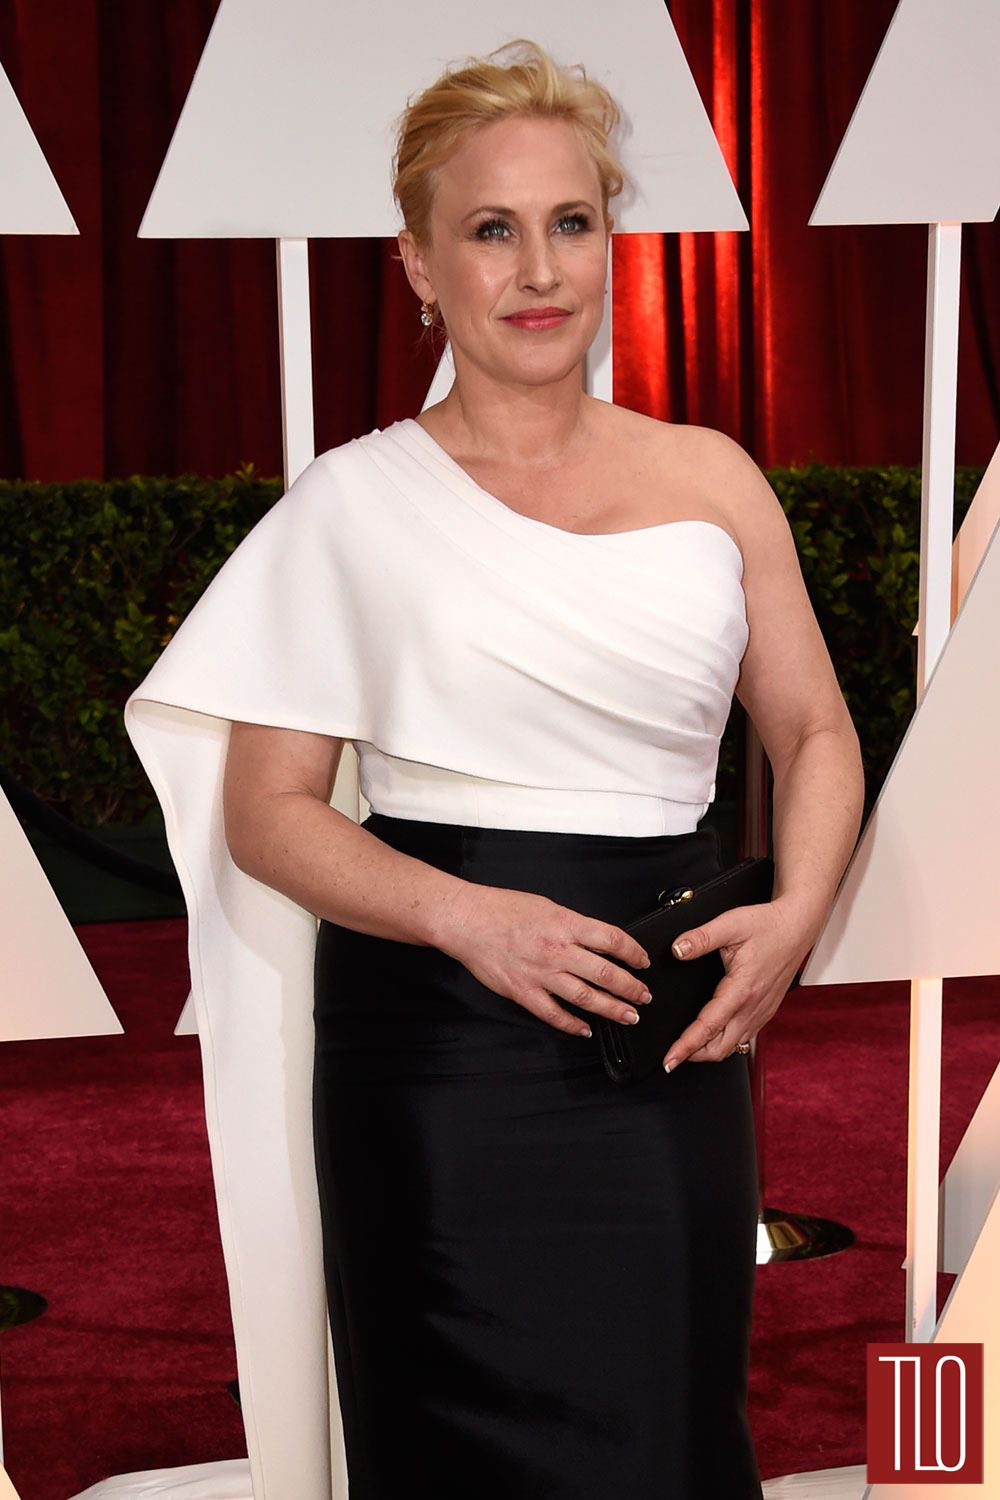 Patricia-Arquette-Oscars-2015-Awards-Red-Carpet-Fashion-Rosetta-Getty-Tom-Lorenzo-Site-TLO (1)